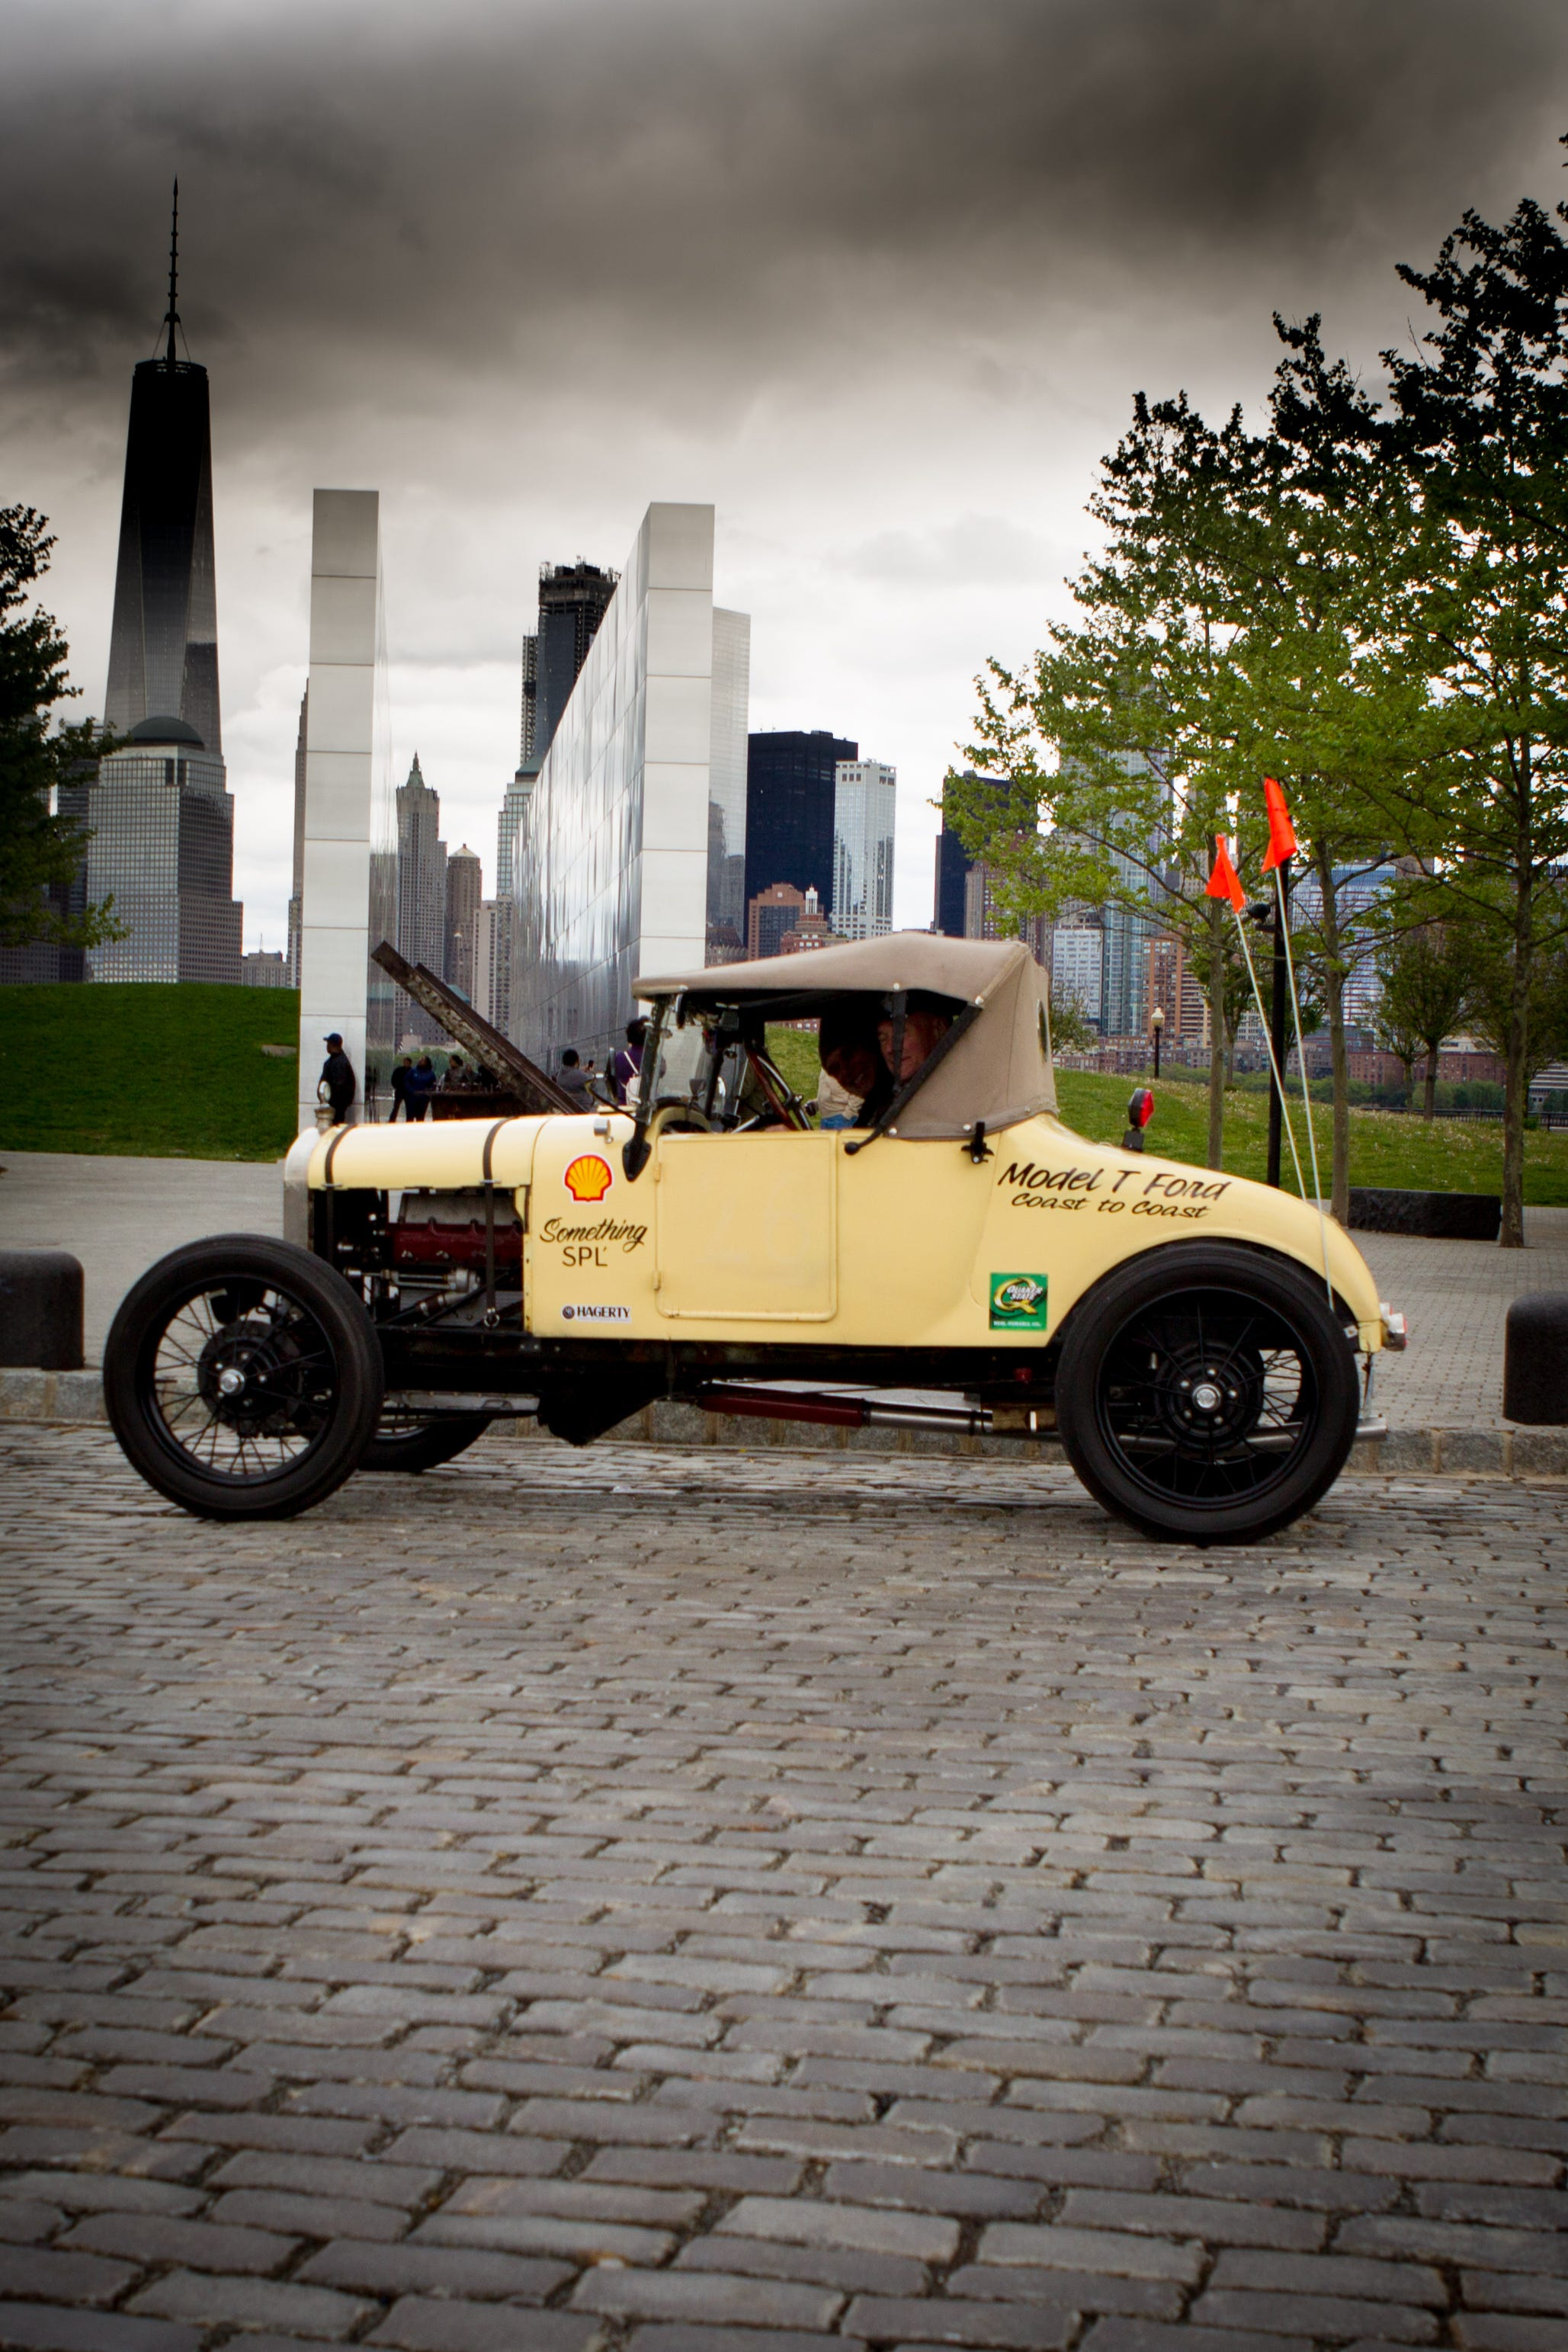 Epic road trip: Coast to coast in a 1926 Ford Model T